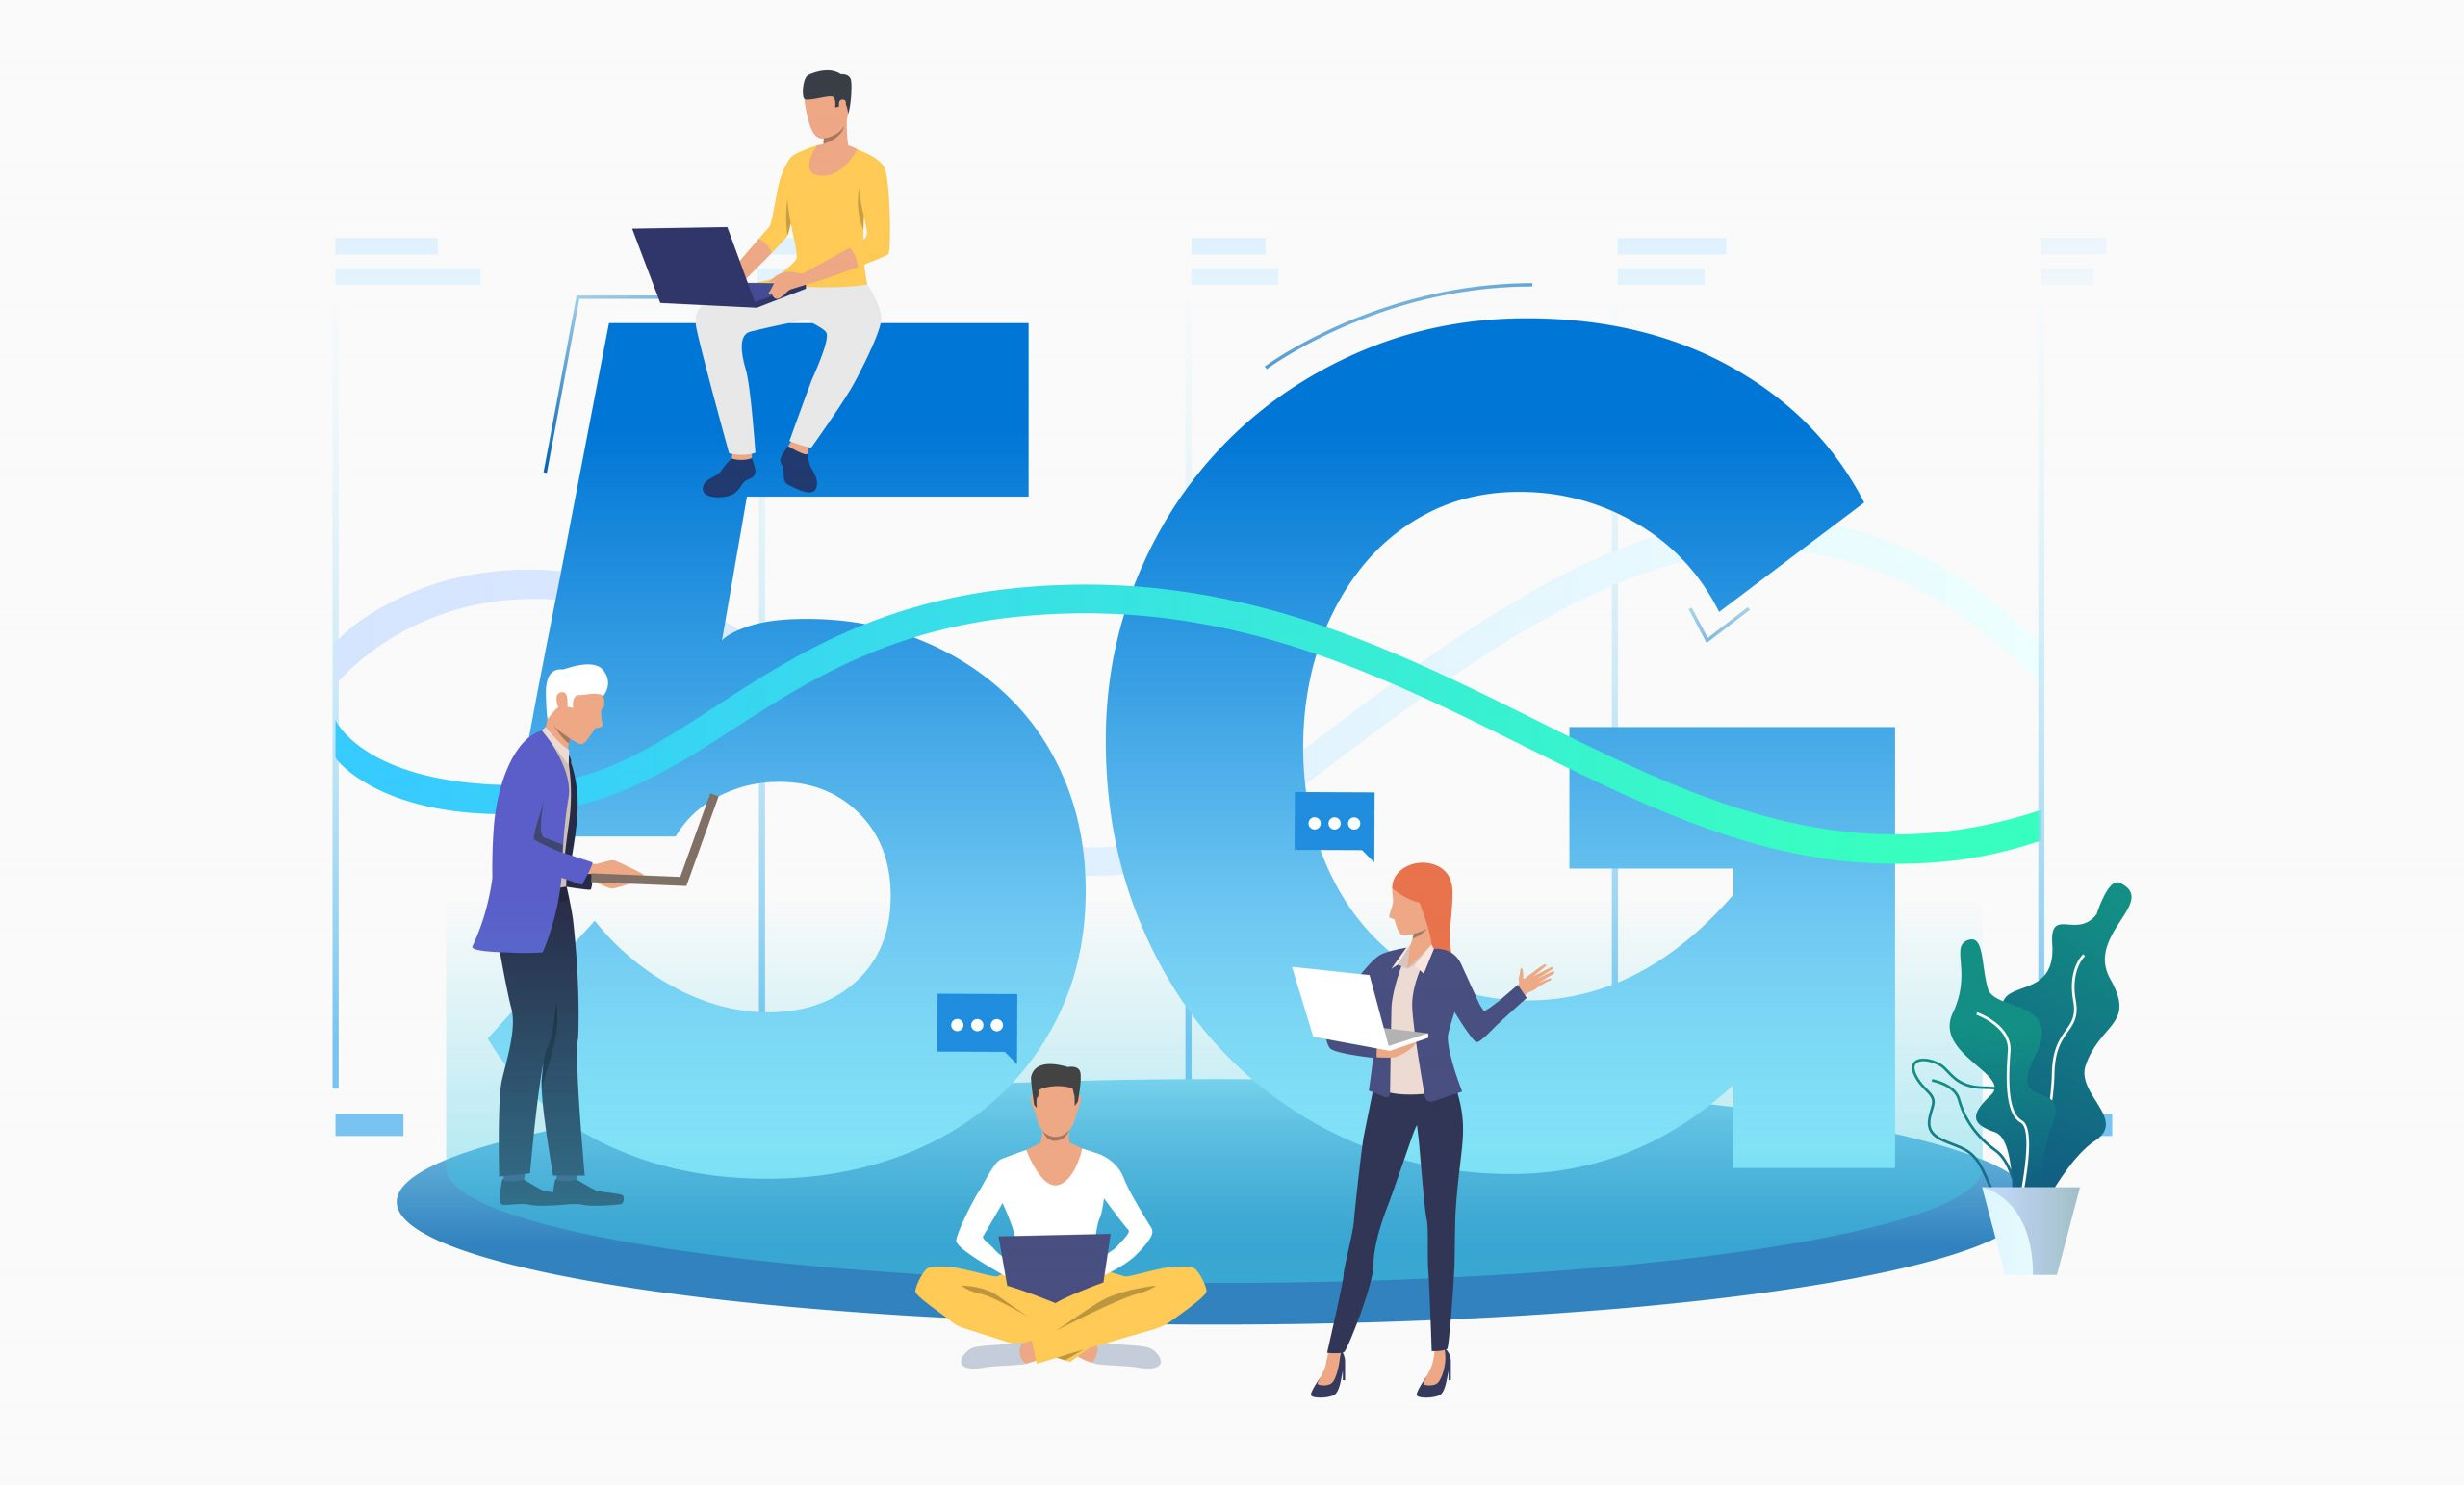 5G - internet of things - IoT | Sygest Srl